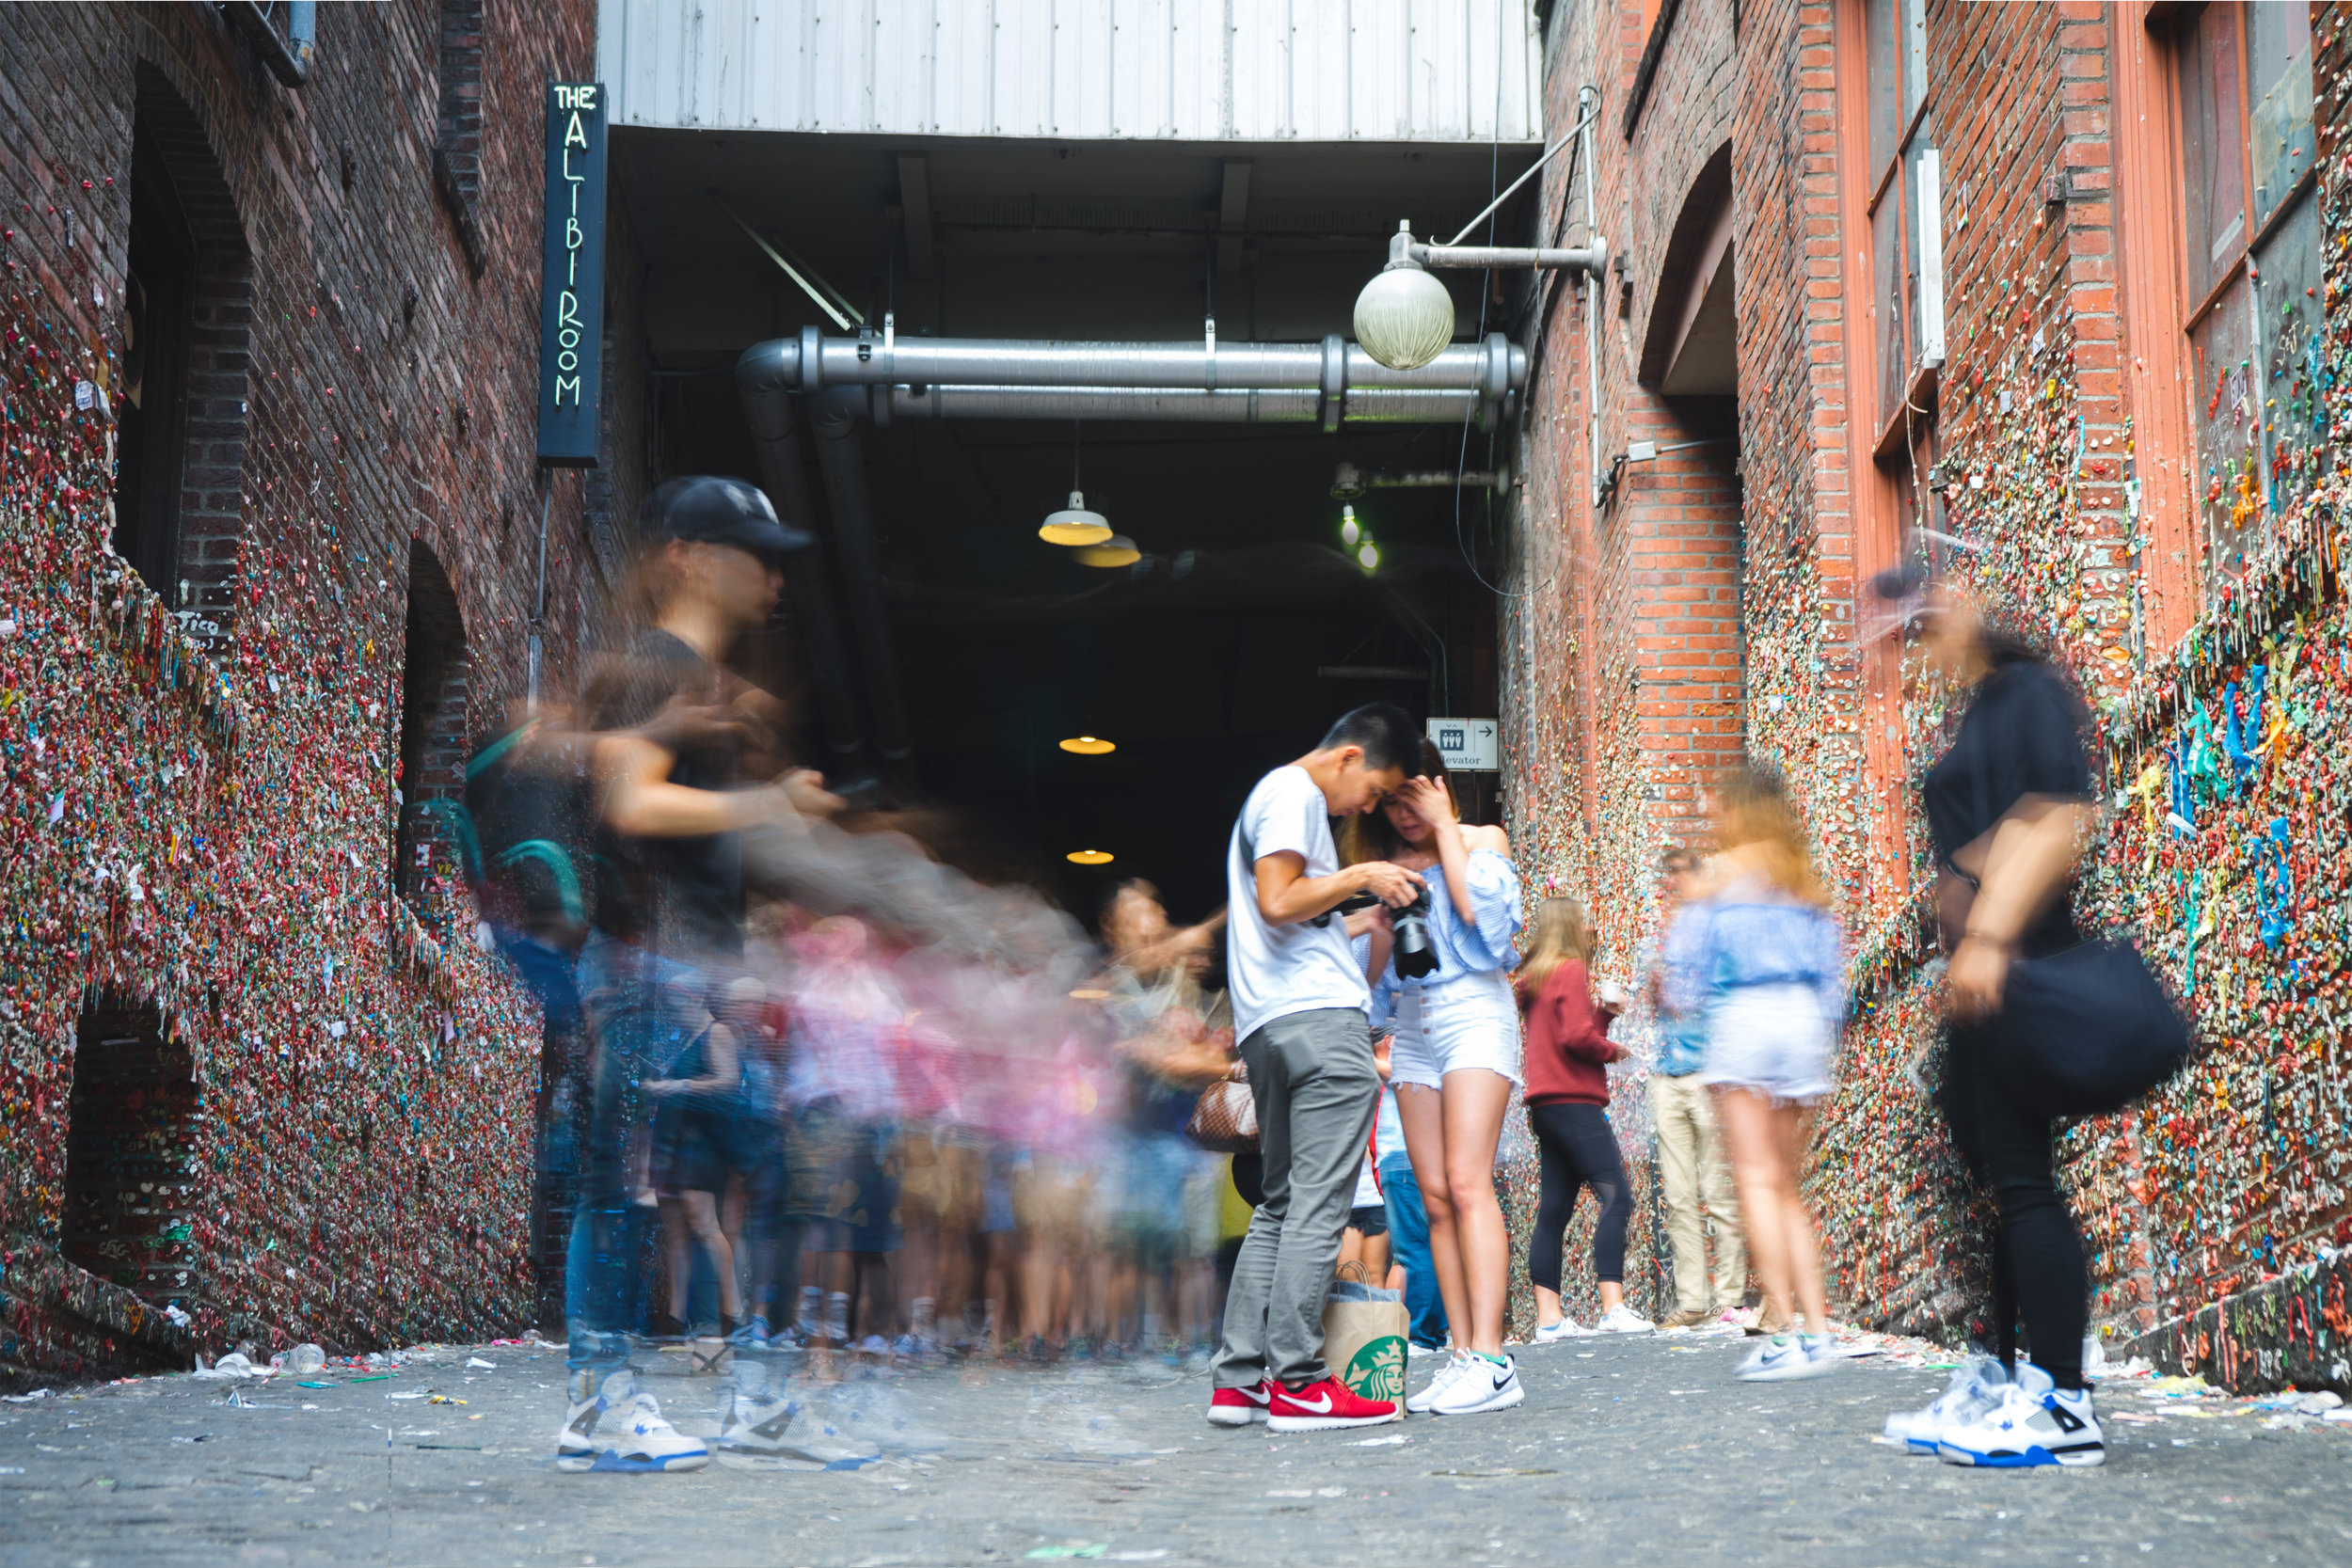 Gum Wall - Hustling and Bustling, and taking photos.jpg